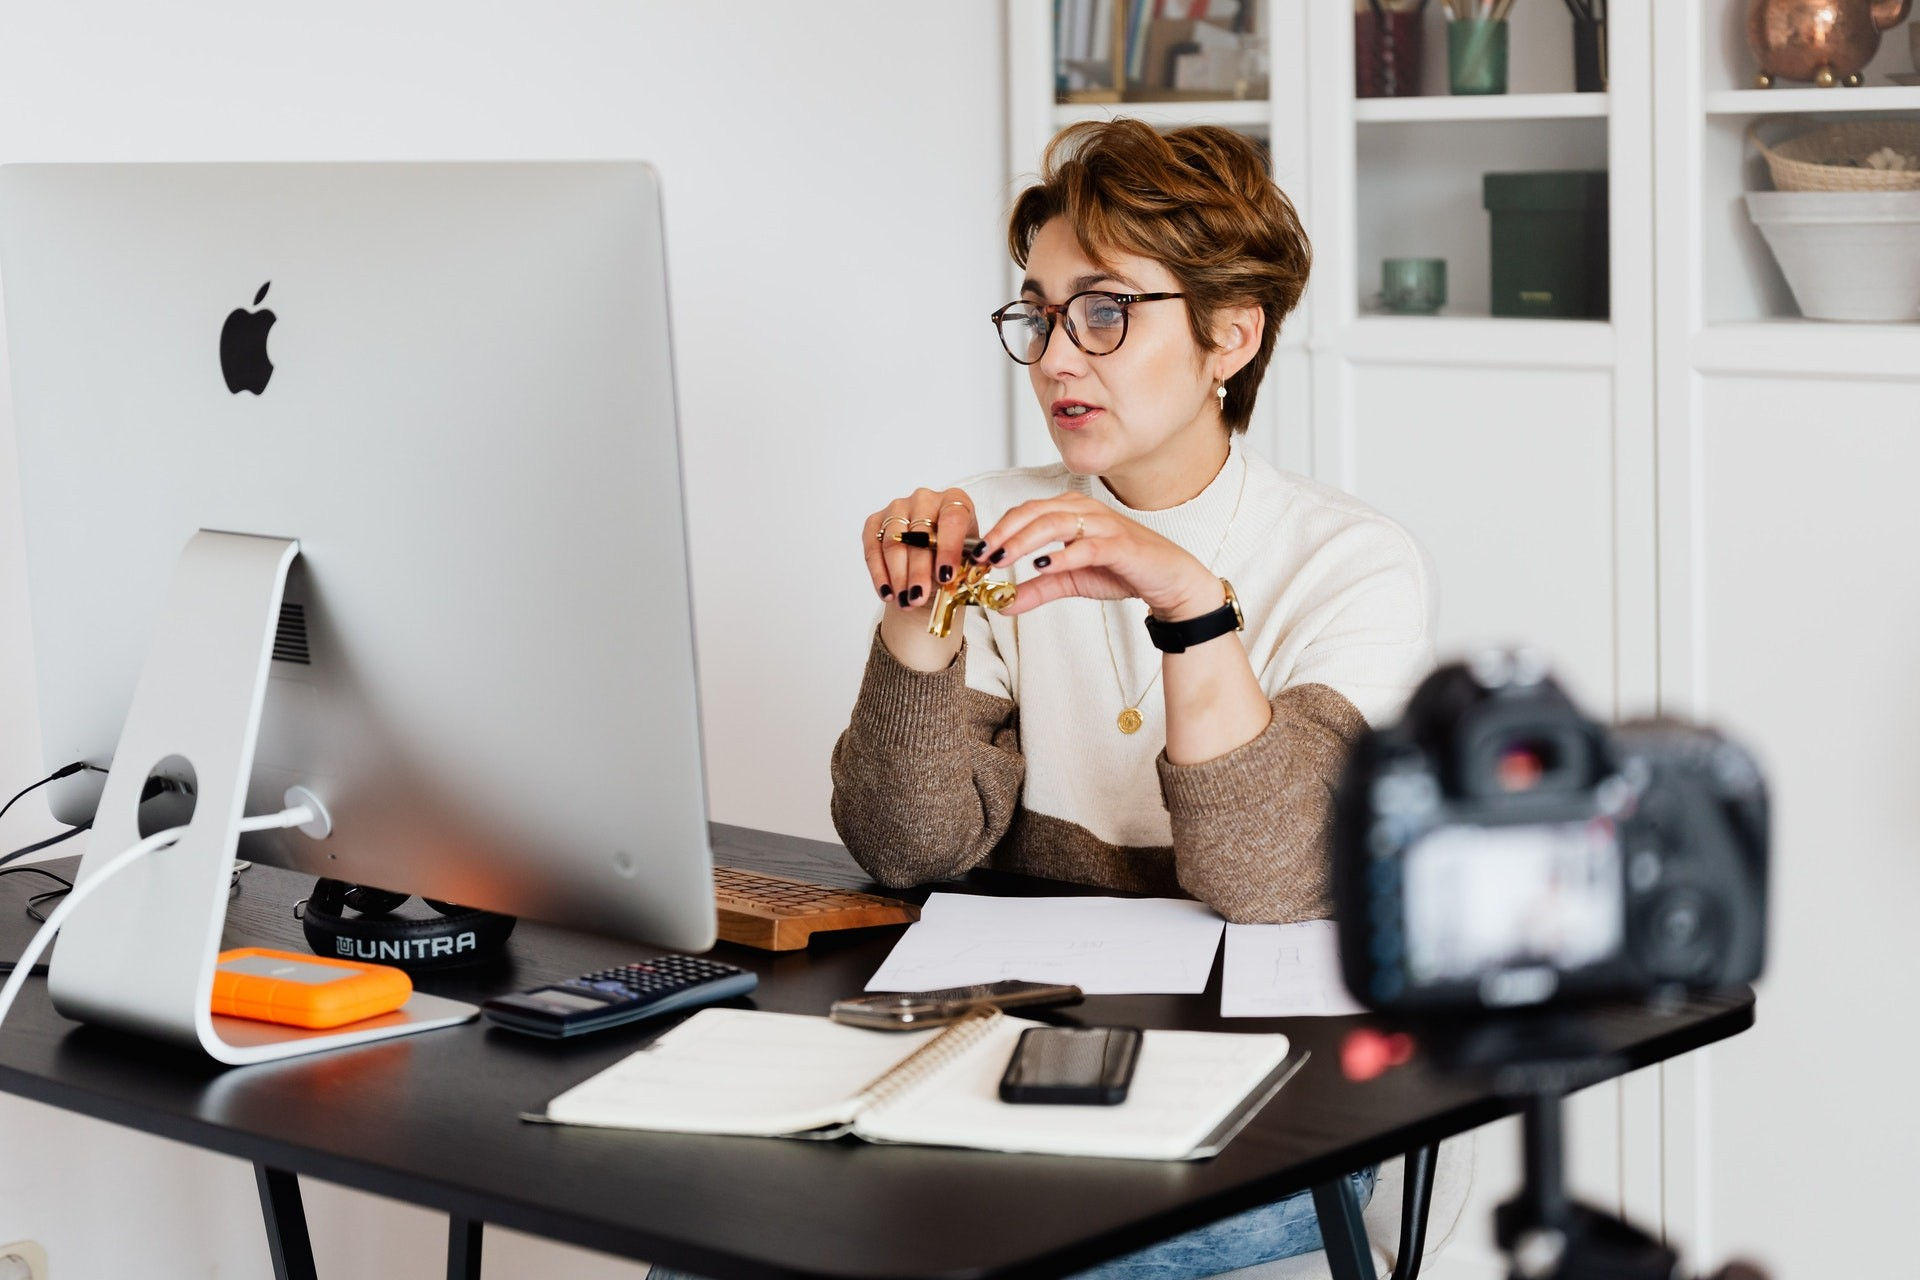 Female teacher sits at workstation with a camera set up to teach online.